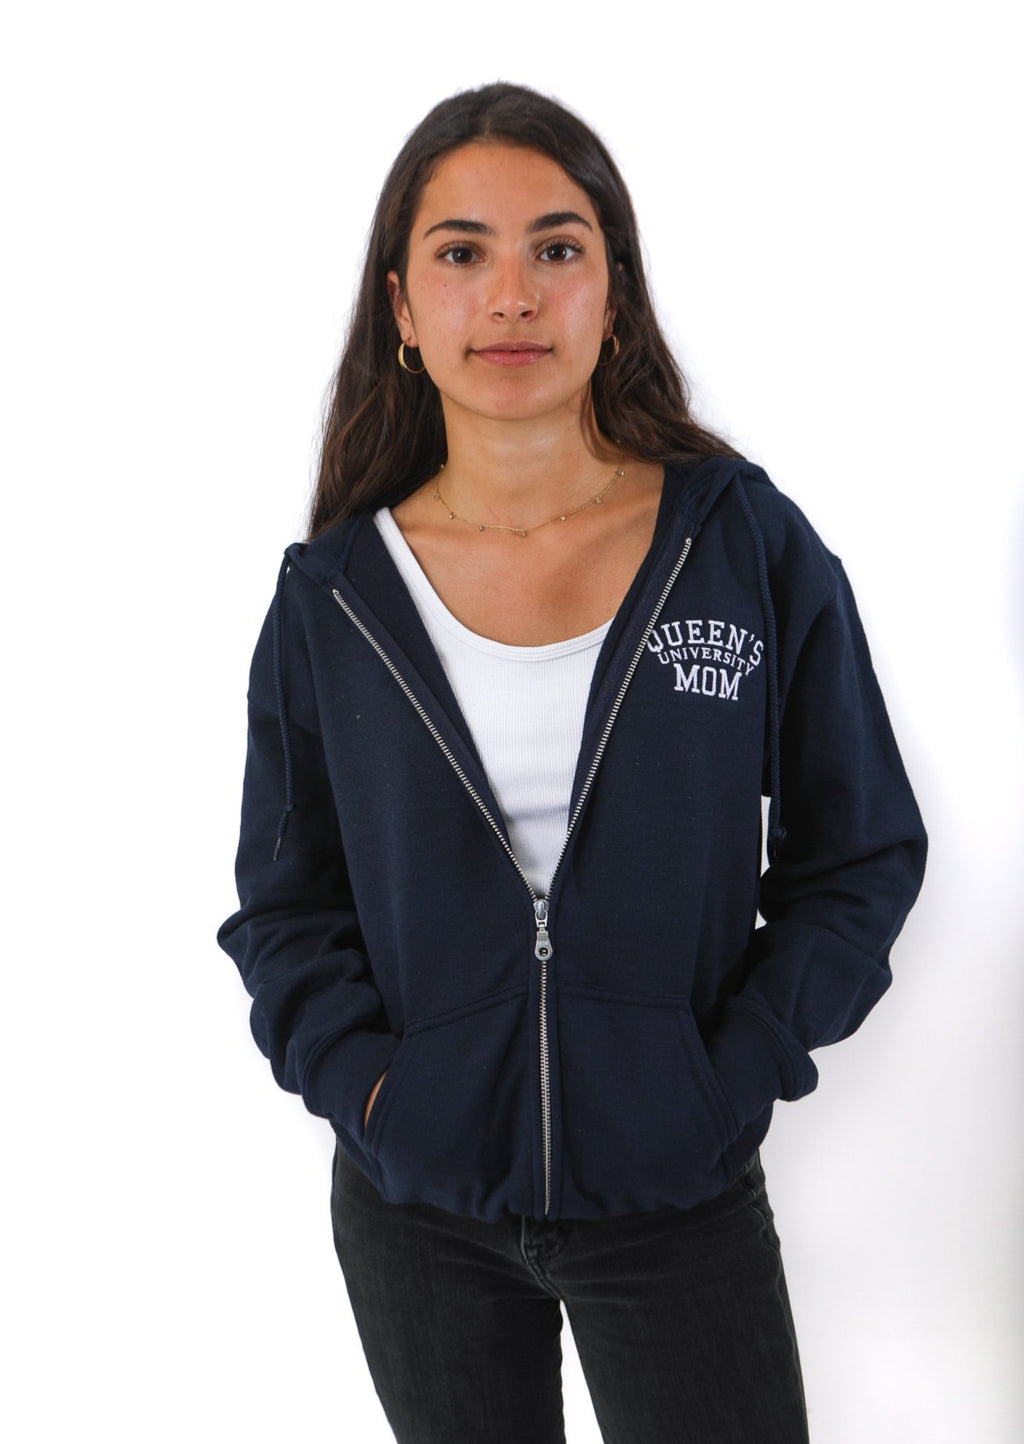 Front view of blue zip up hooded sweater with white Queen's mom logo on chest